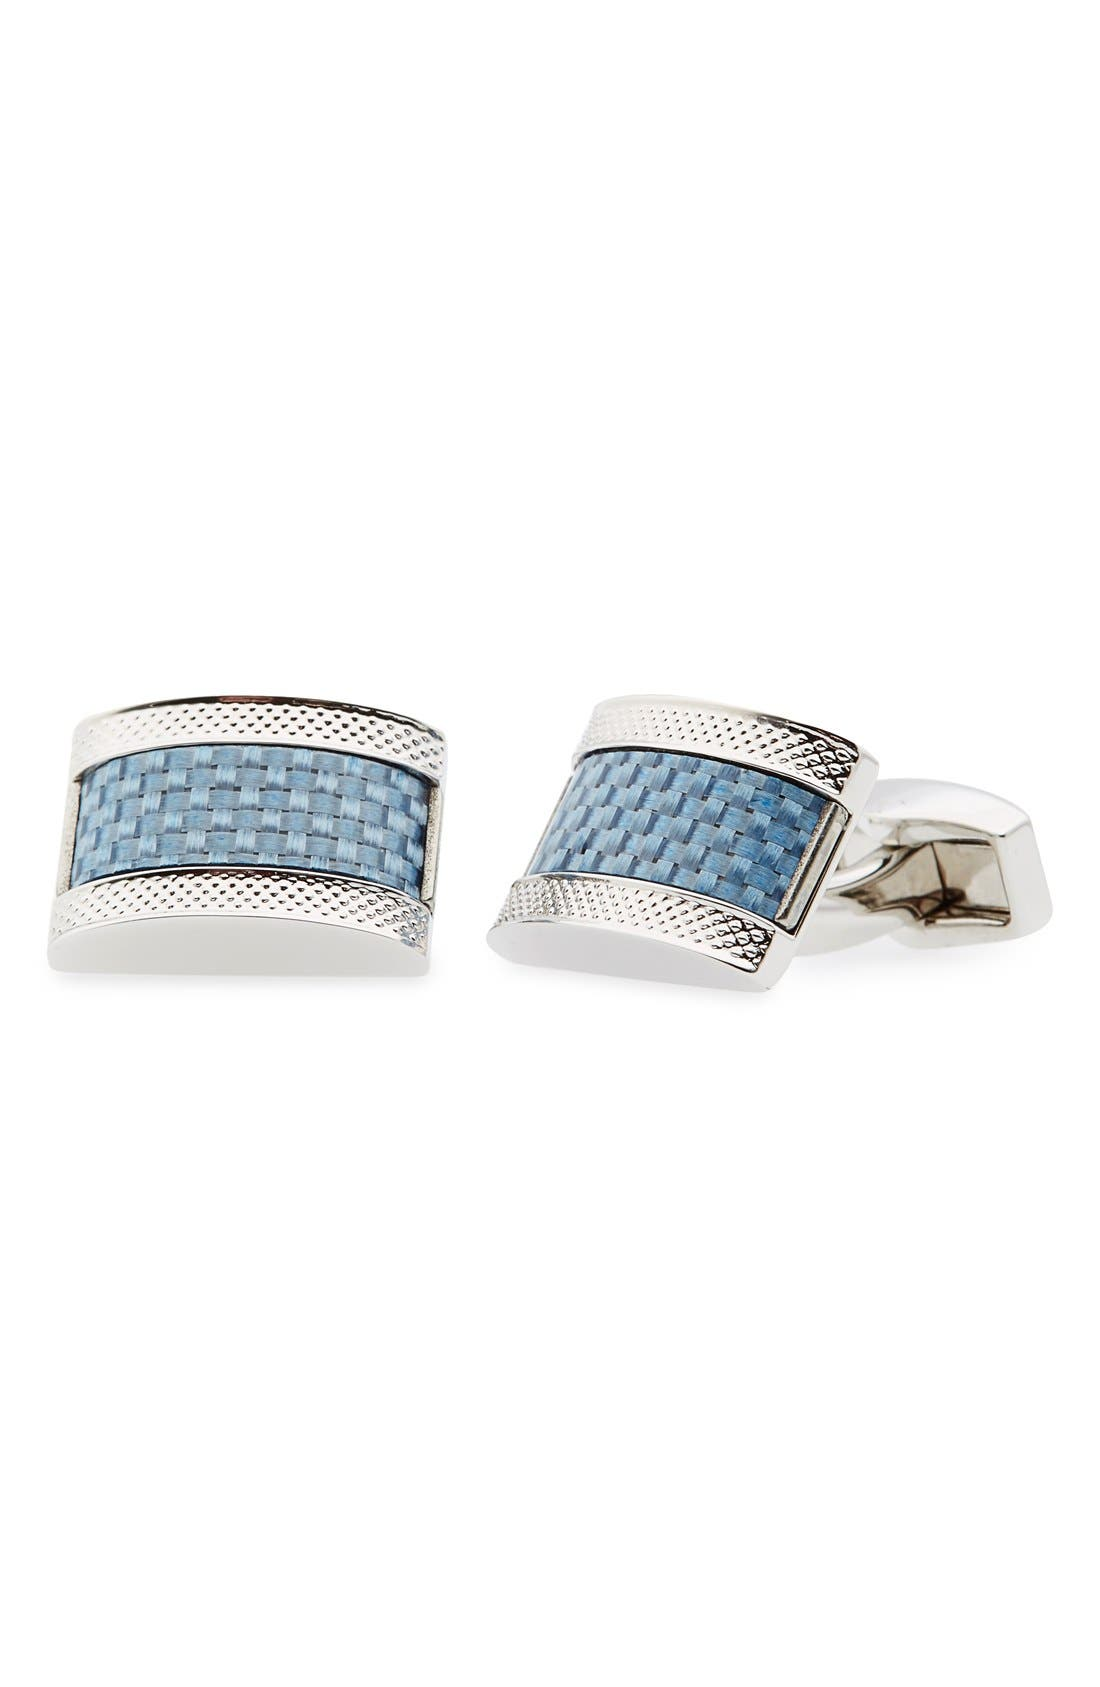 Carbon Fiber Cuff Links,                         Main,                         color, BLUE